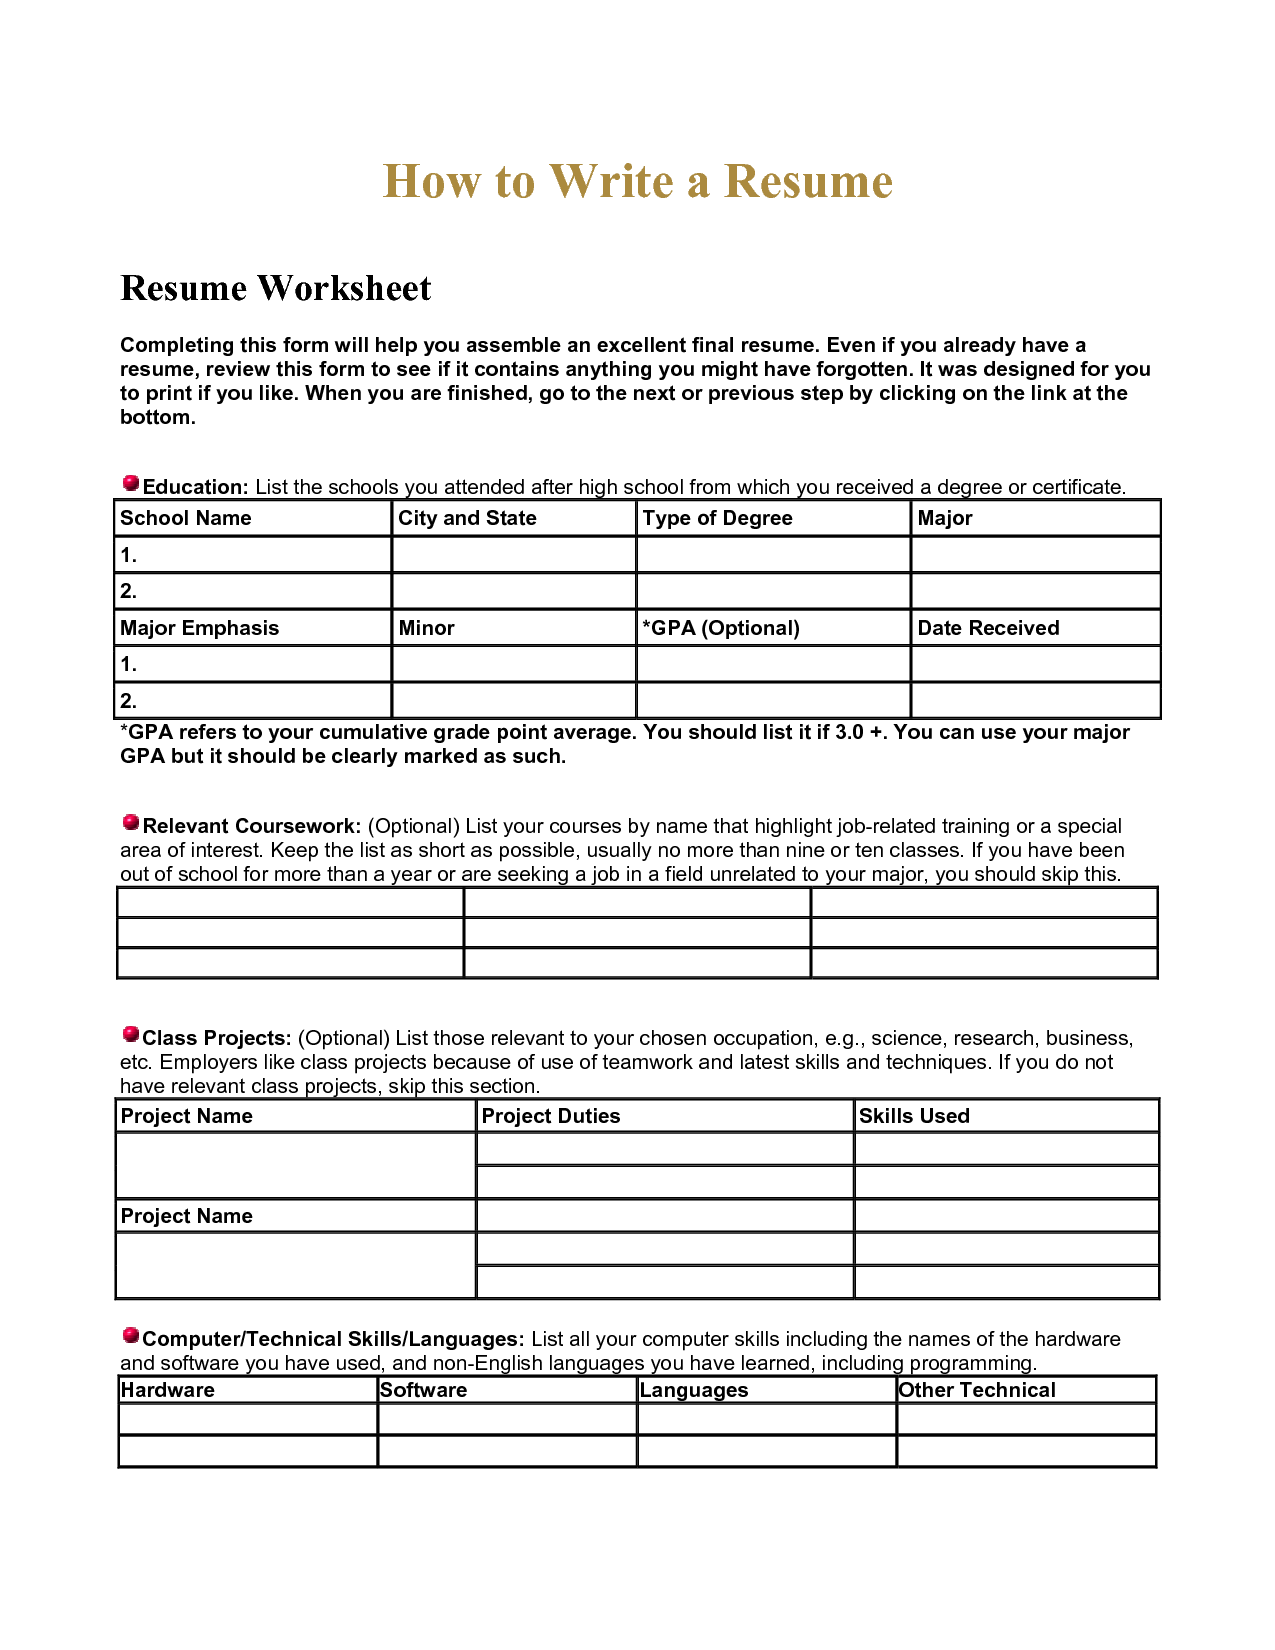 Worksheets Financial Literacy Worksheets high school resume worksheet using your academic experiences to build a resume